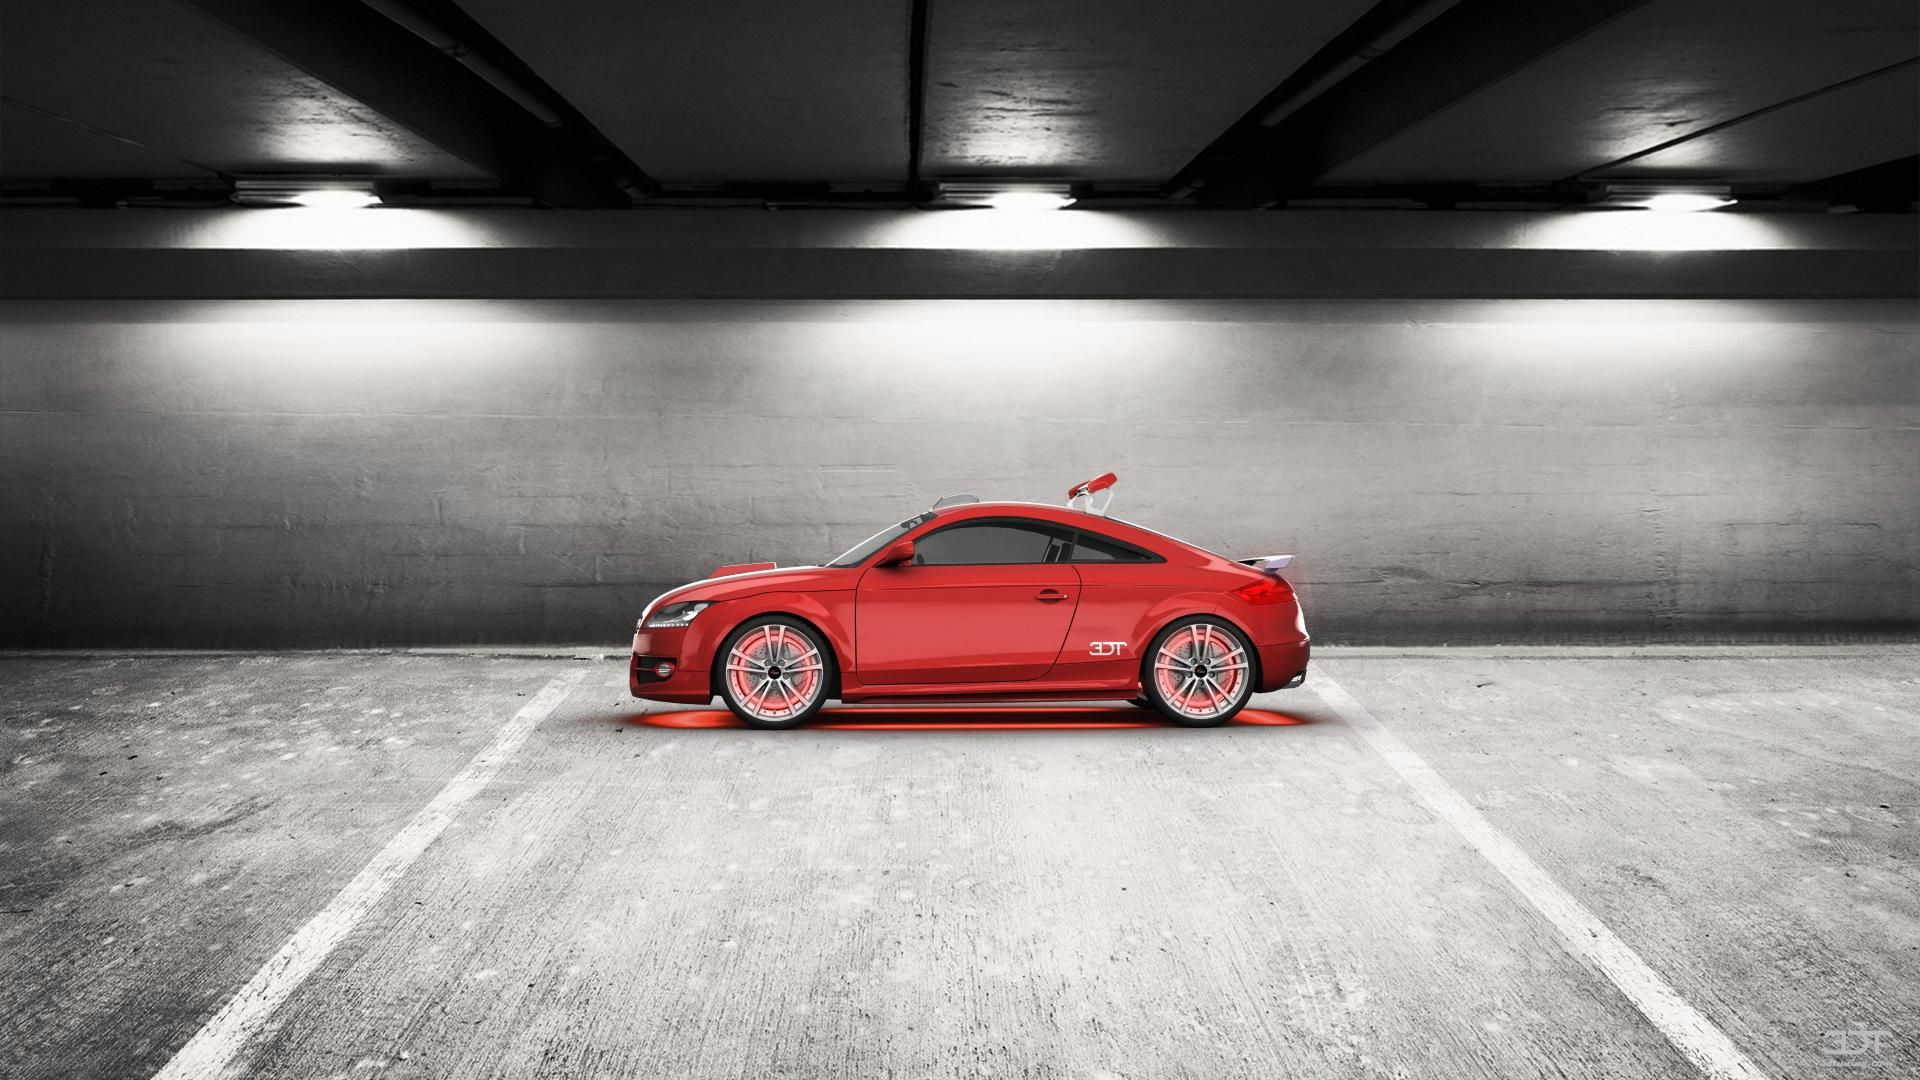 Checkout my tuning Audi TT RS 2010 at 3DTuning 3dtuning tuning